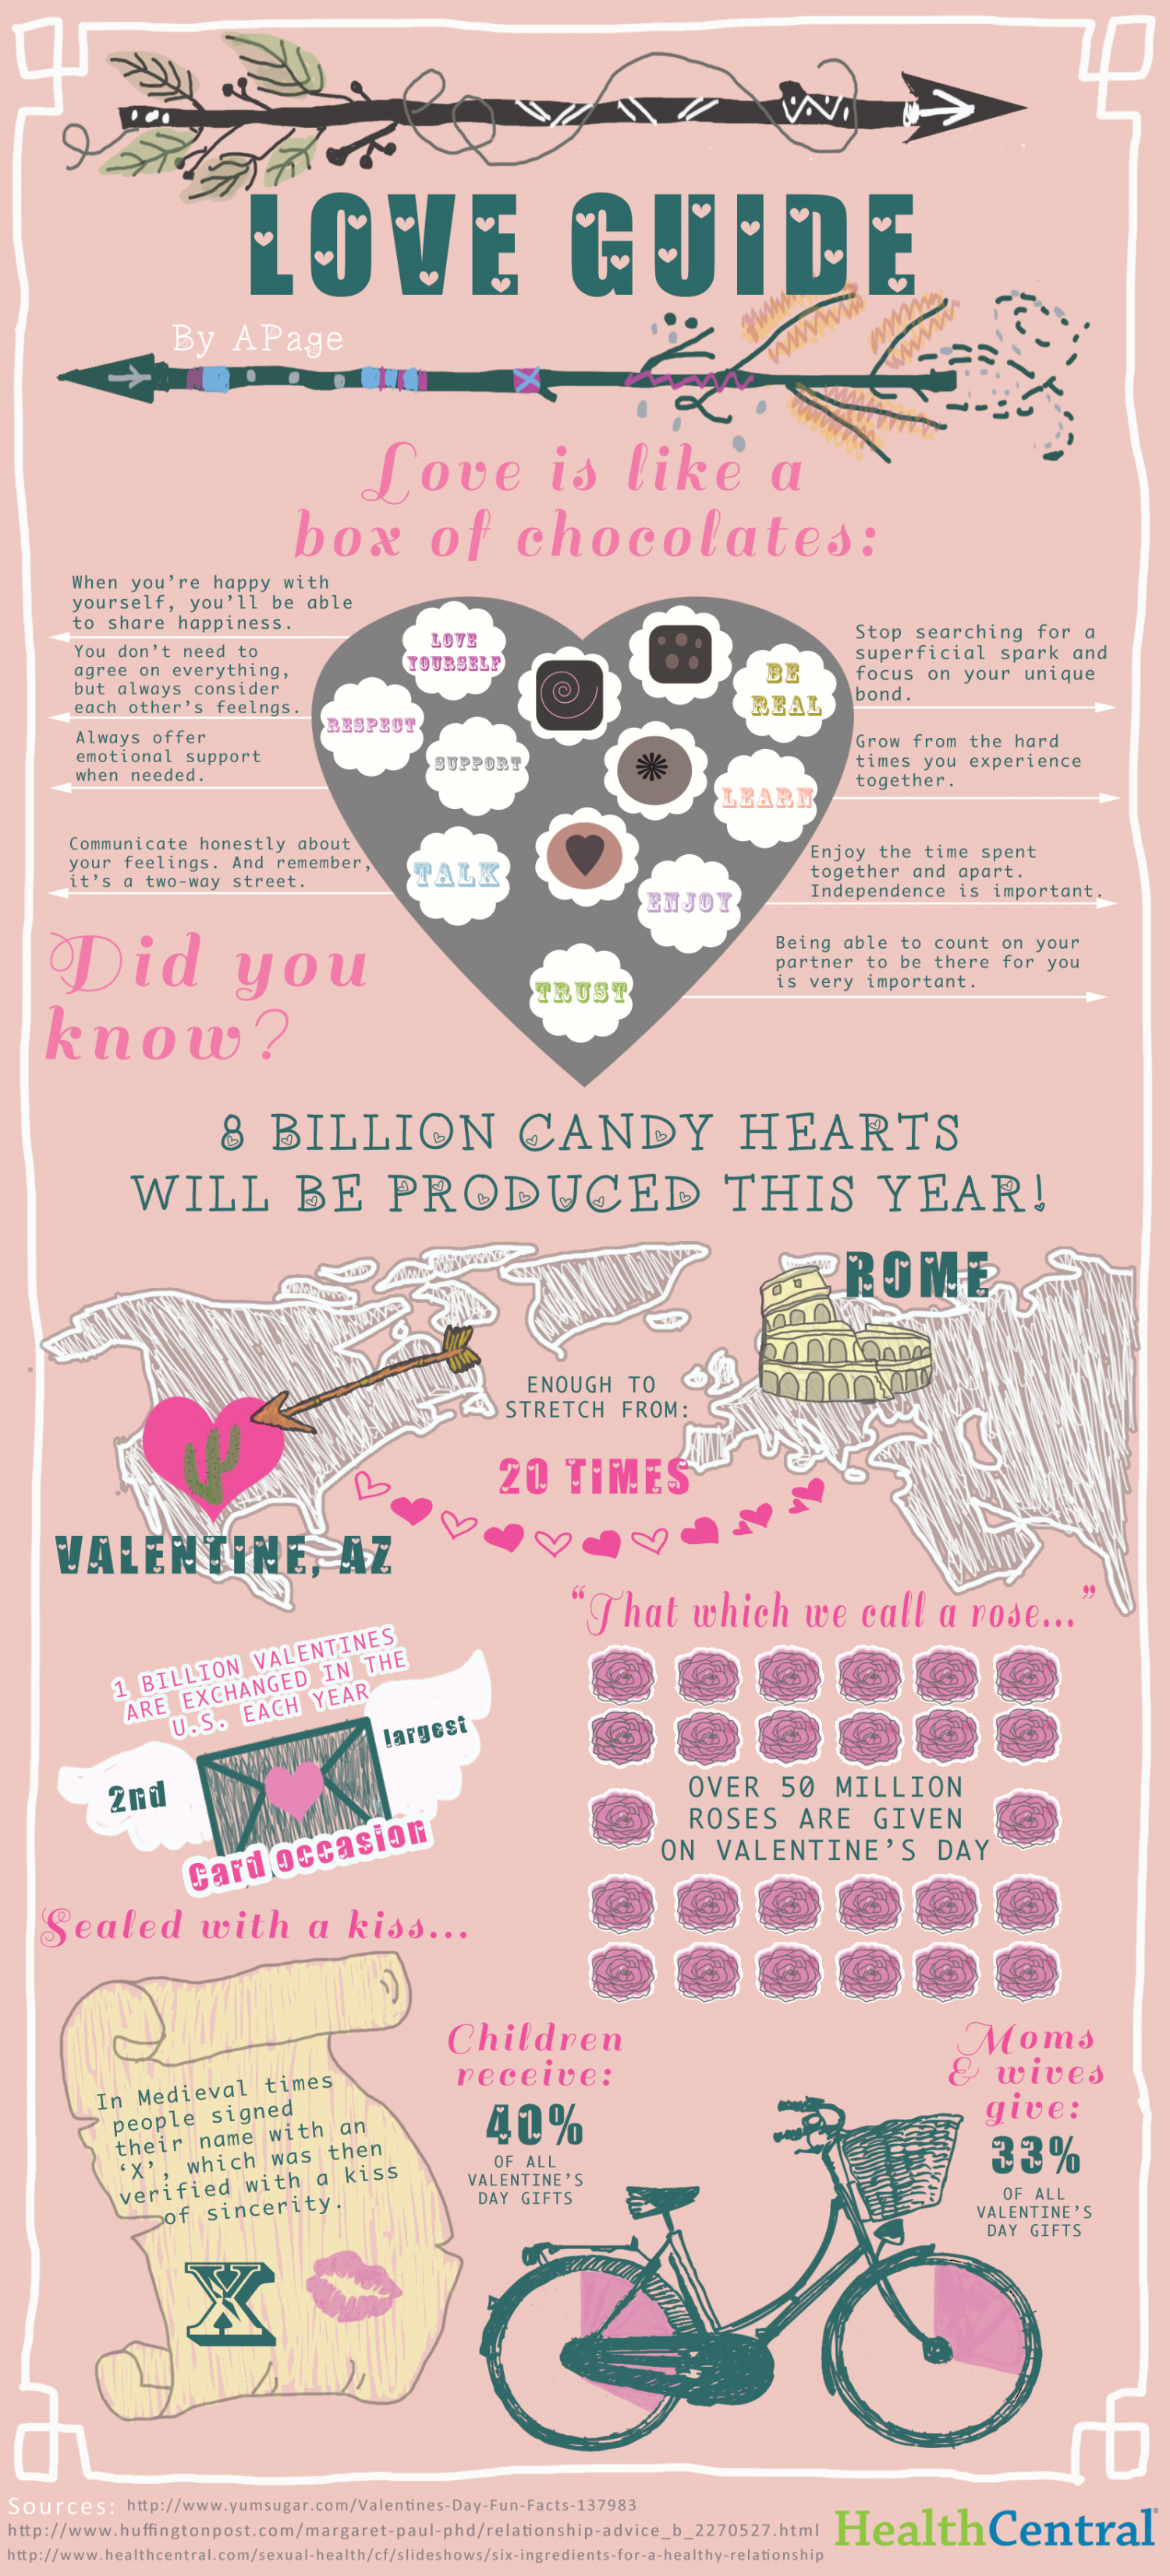 Love Guide Infographic